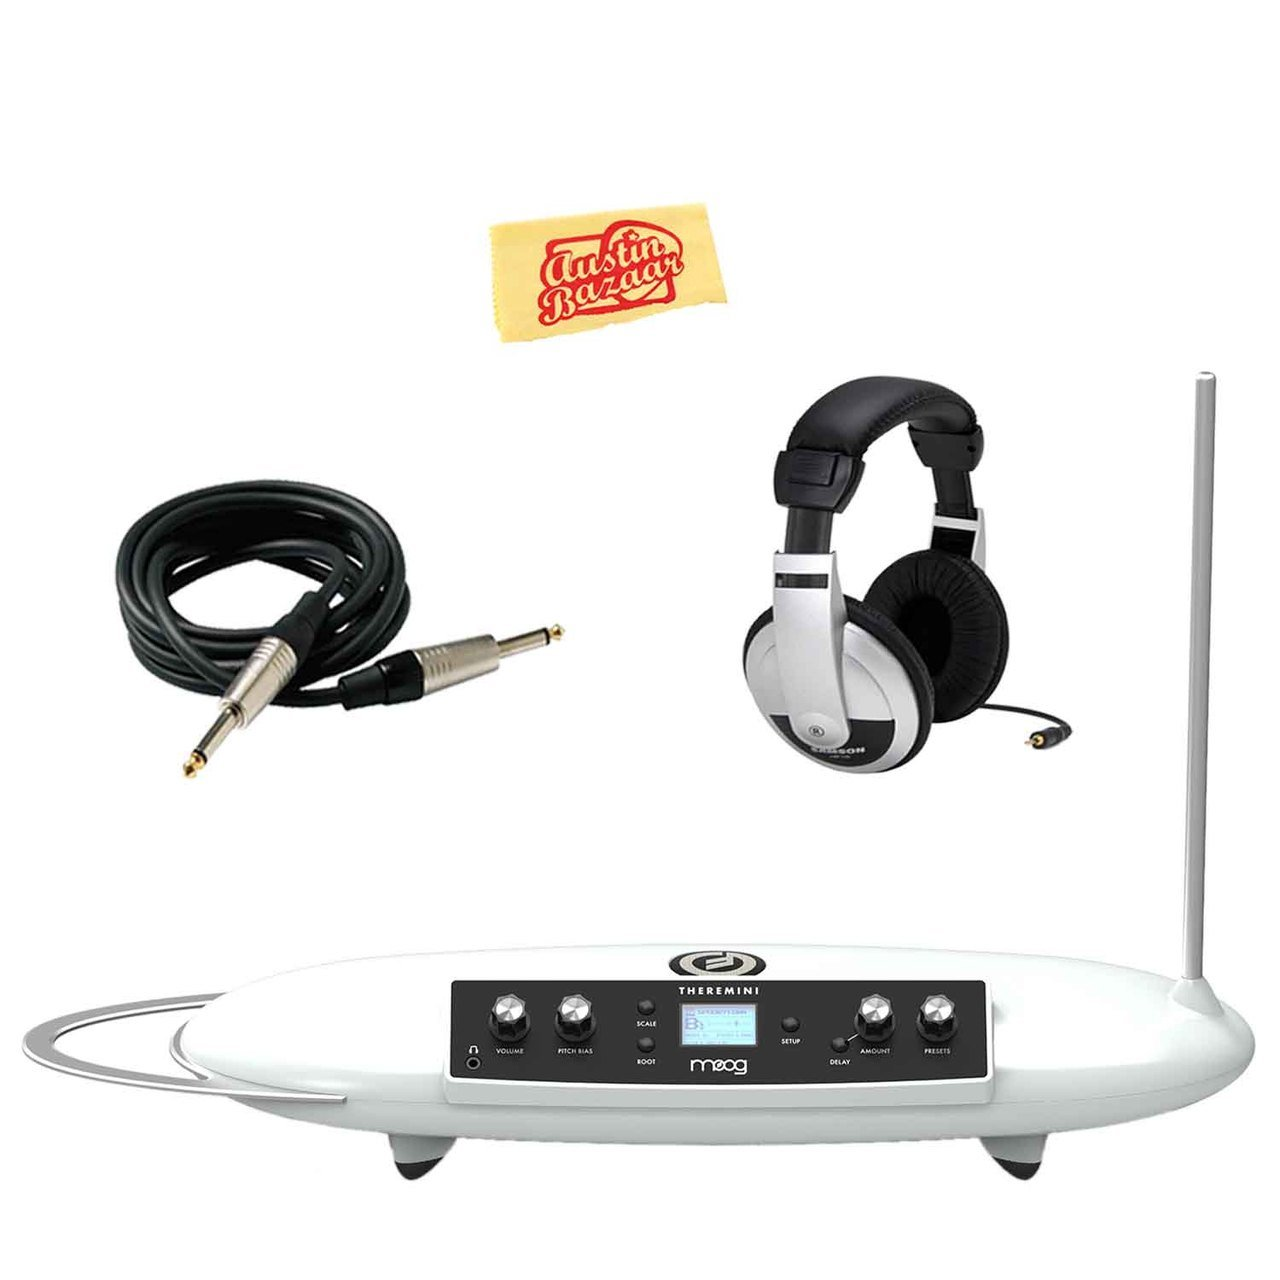 Moog Theremini Classic Theremin Bundle with Instrument Cable, Headphones, and Polishing Cloth